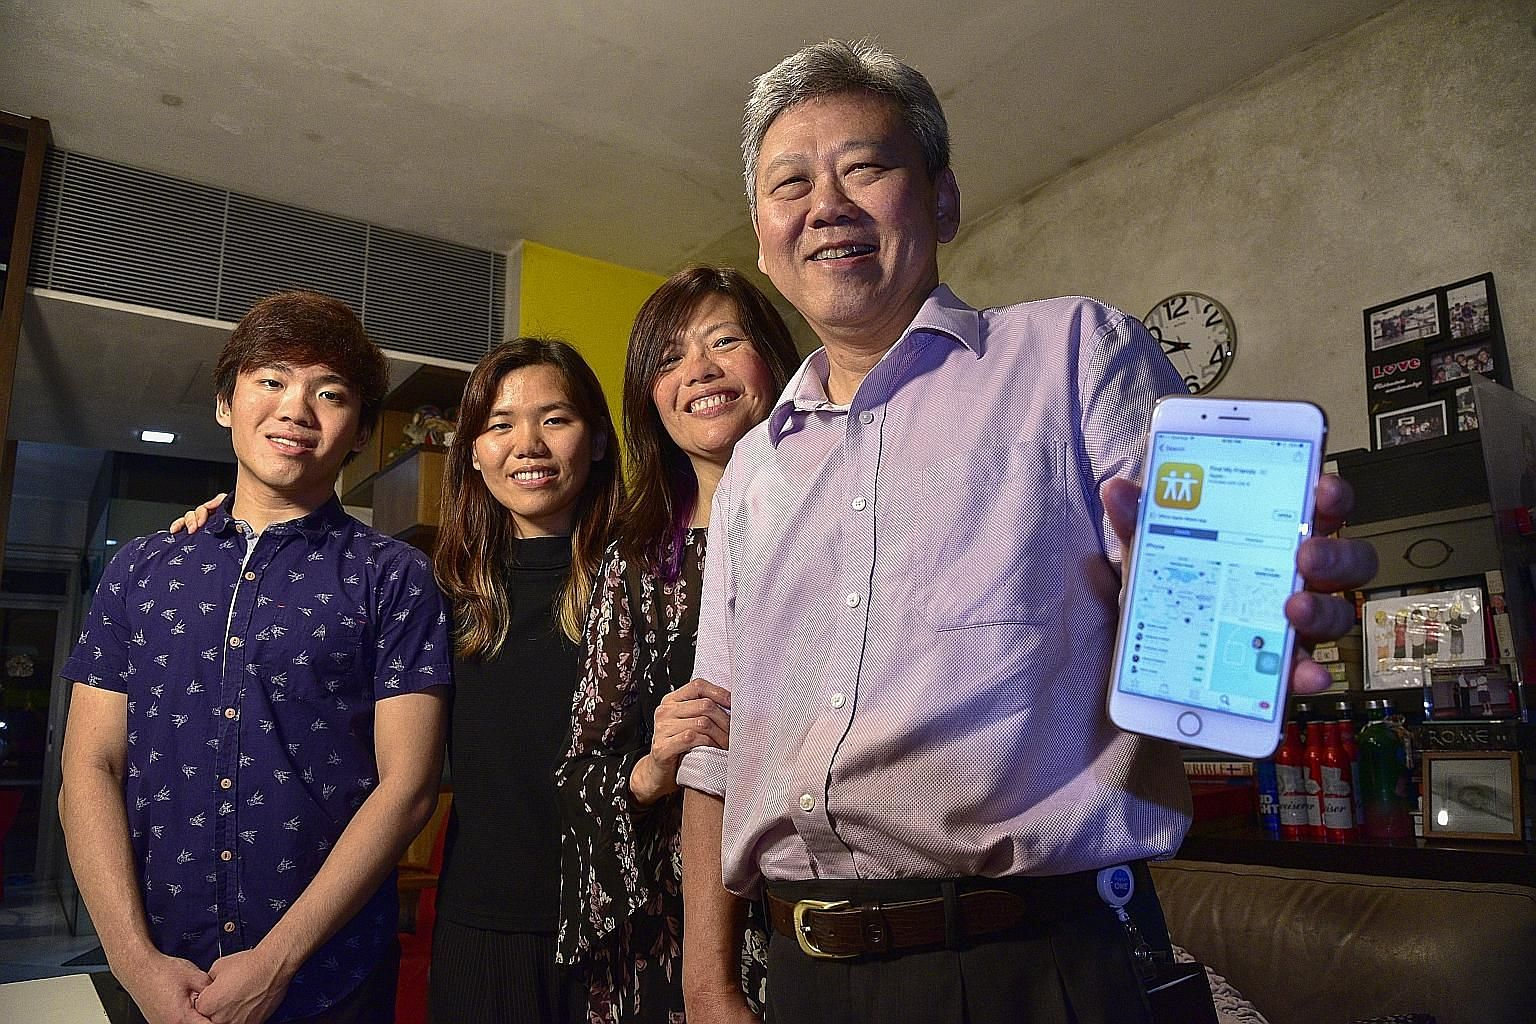 Undergraduate Ranice Lim uses the Find My Friends app to see where her boyfriend Darrin Loh is when they are going to meet. Mr Francis Lam and his wife Yap Wai Leng use tracking app Find My Friends to locate their three children, including son Thomas